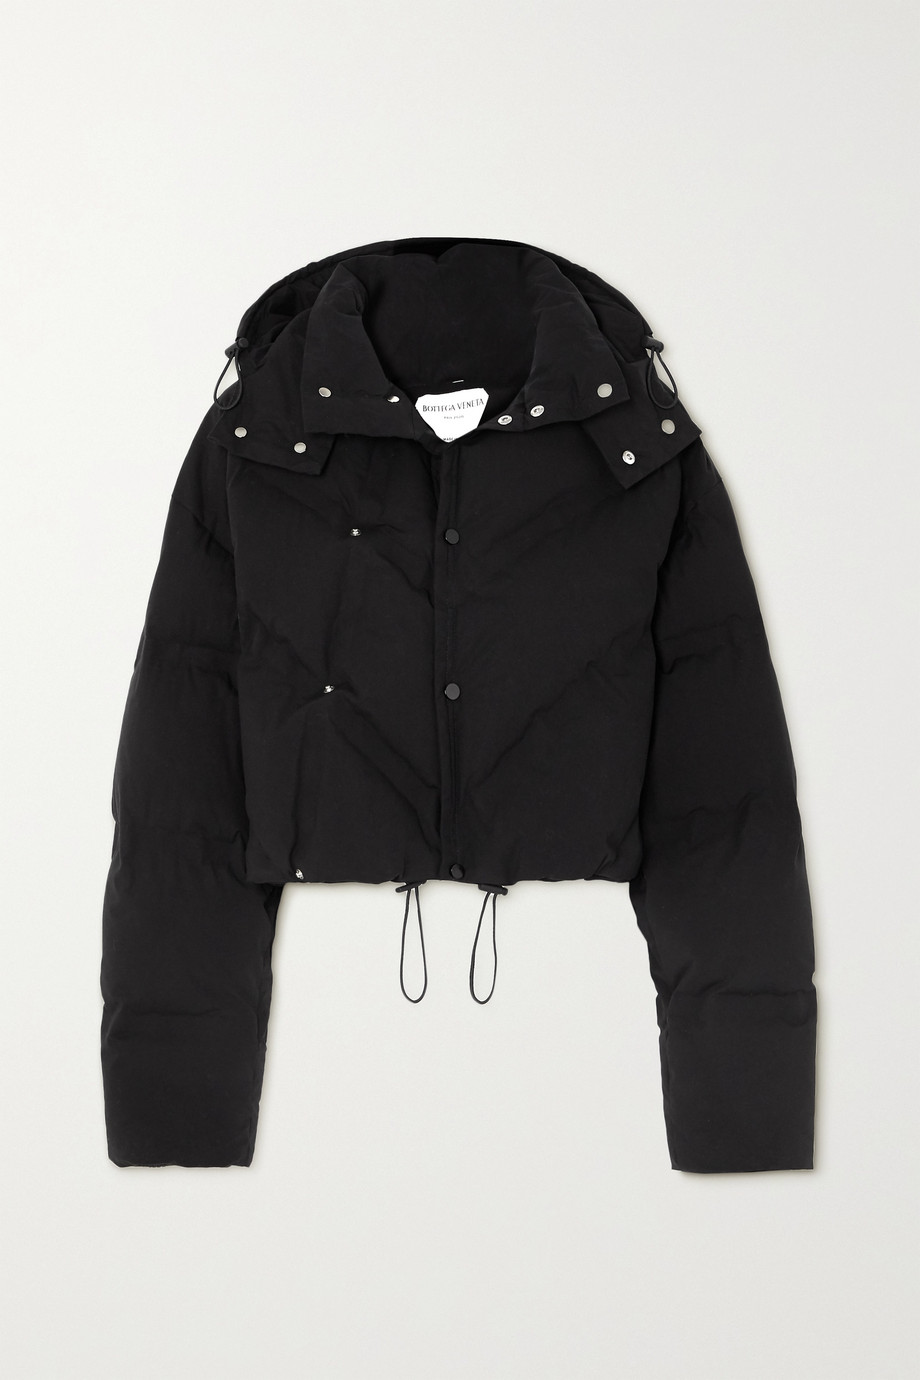 Bottega Veneta Hooded quilted cotton-blend jacket